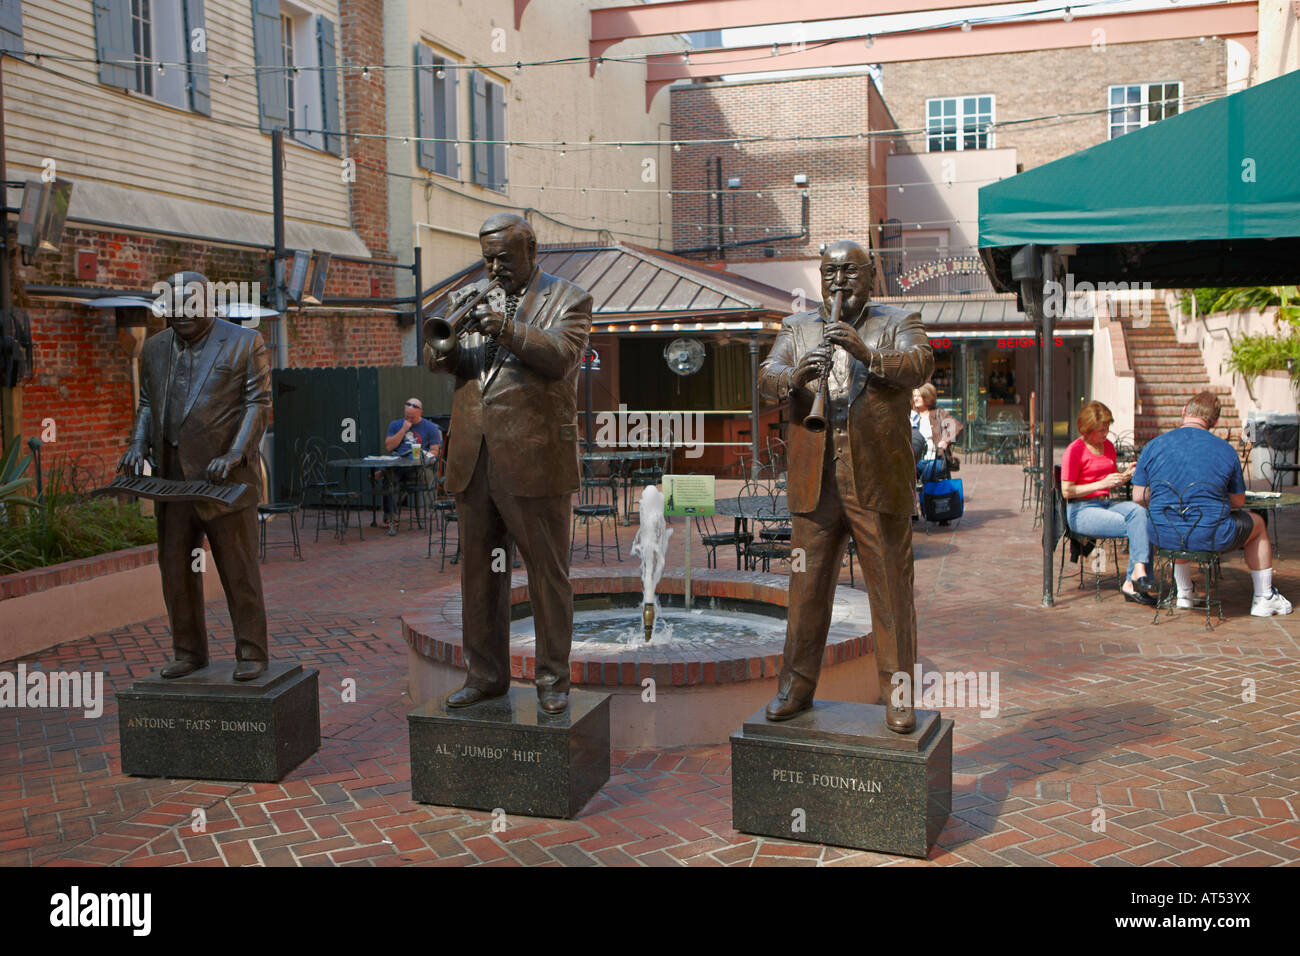 Bronze statues of famous jazz musicians - Antoine Domino, Al Hirt and Pete Fountain on Bourbon Street. French Quarter, - Stock Image